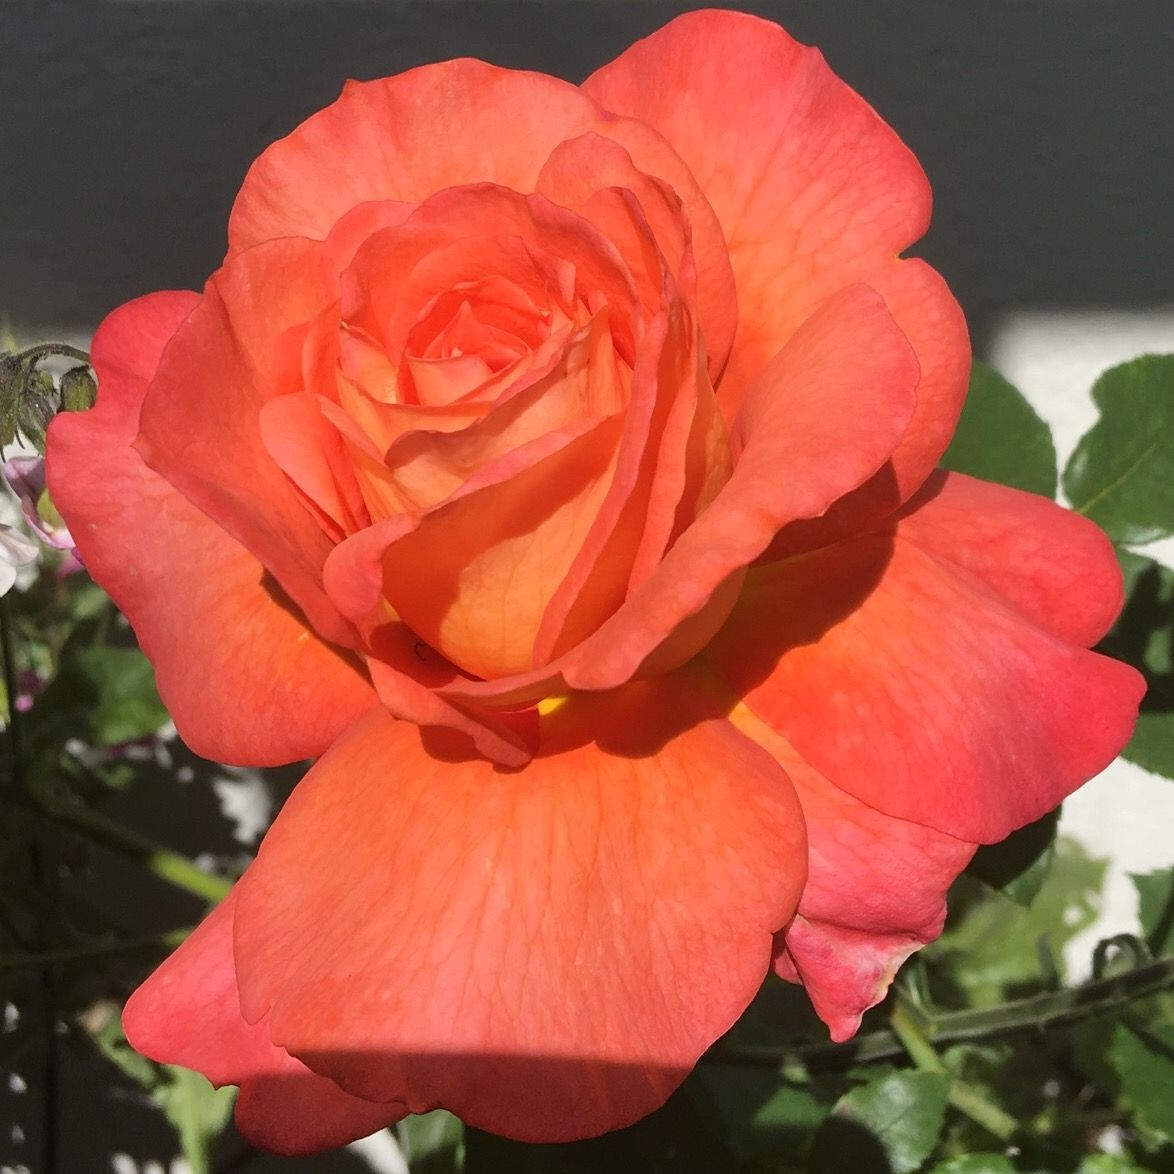 Perfect light for a gorgeous rose!